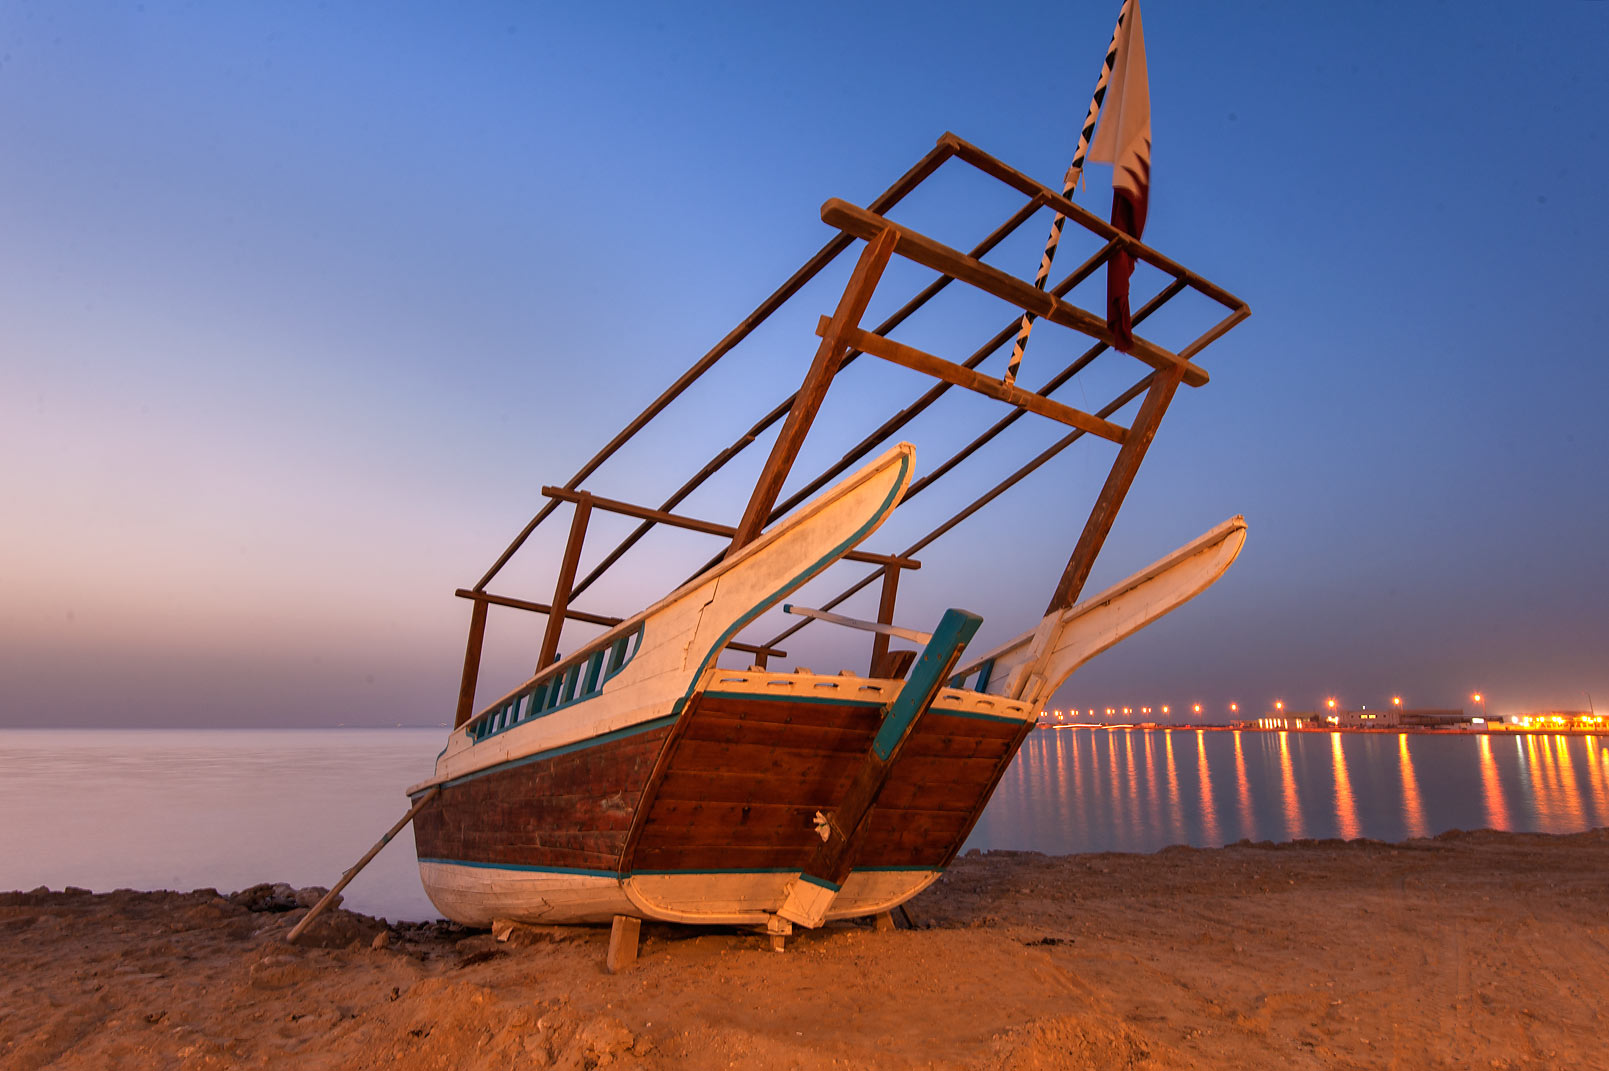 Beached dhow boat in Al Wakra Heritage Village (Souq Waqif in Al Wakrah). Qatar